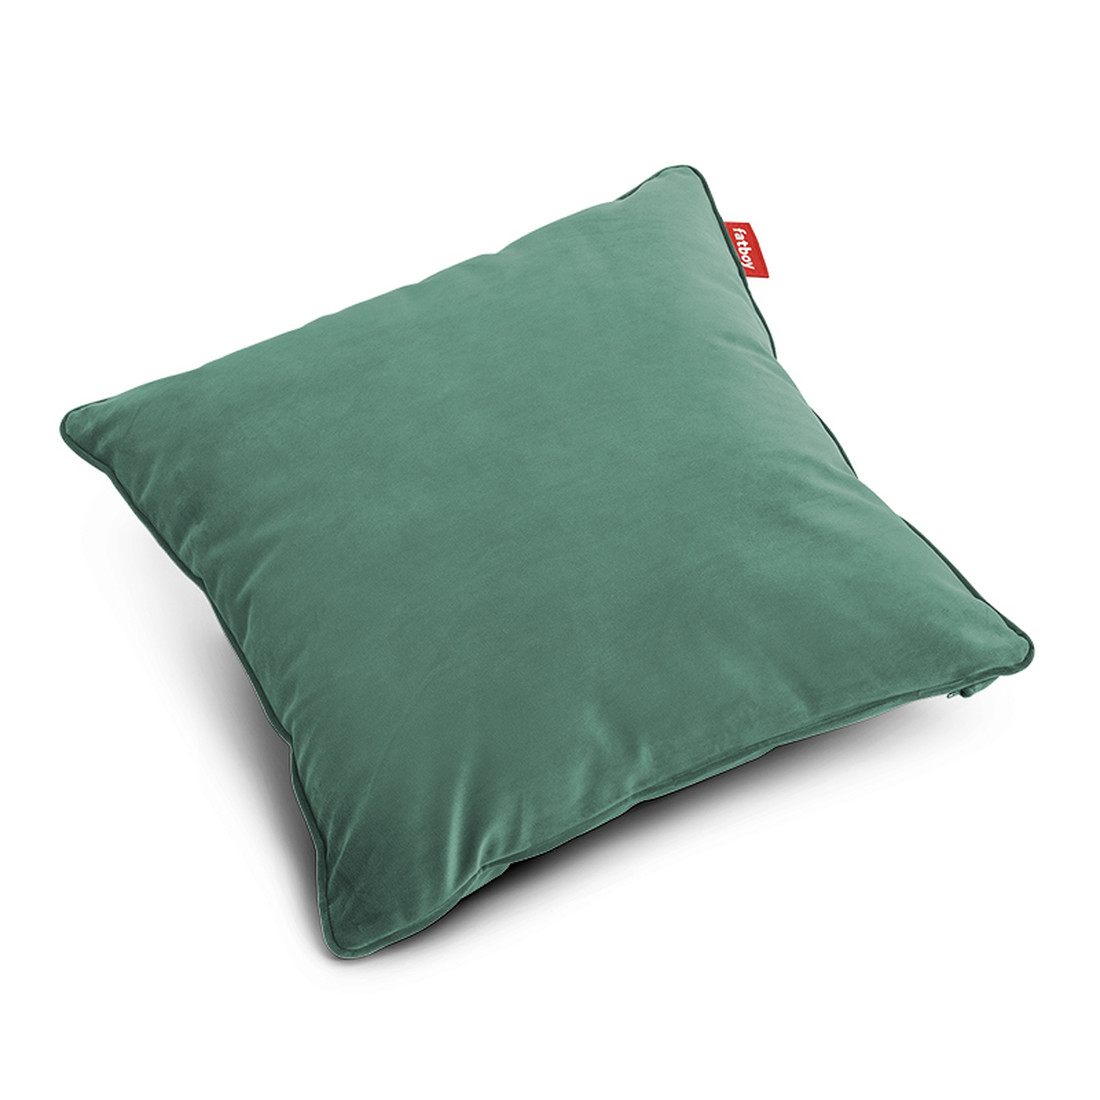 Pillow Square Velvet, Recycled Sage - 50 x 50 cm Kissen by fatboy